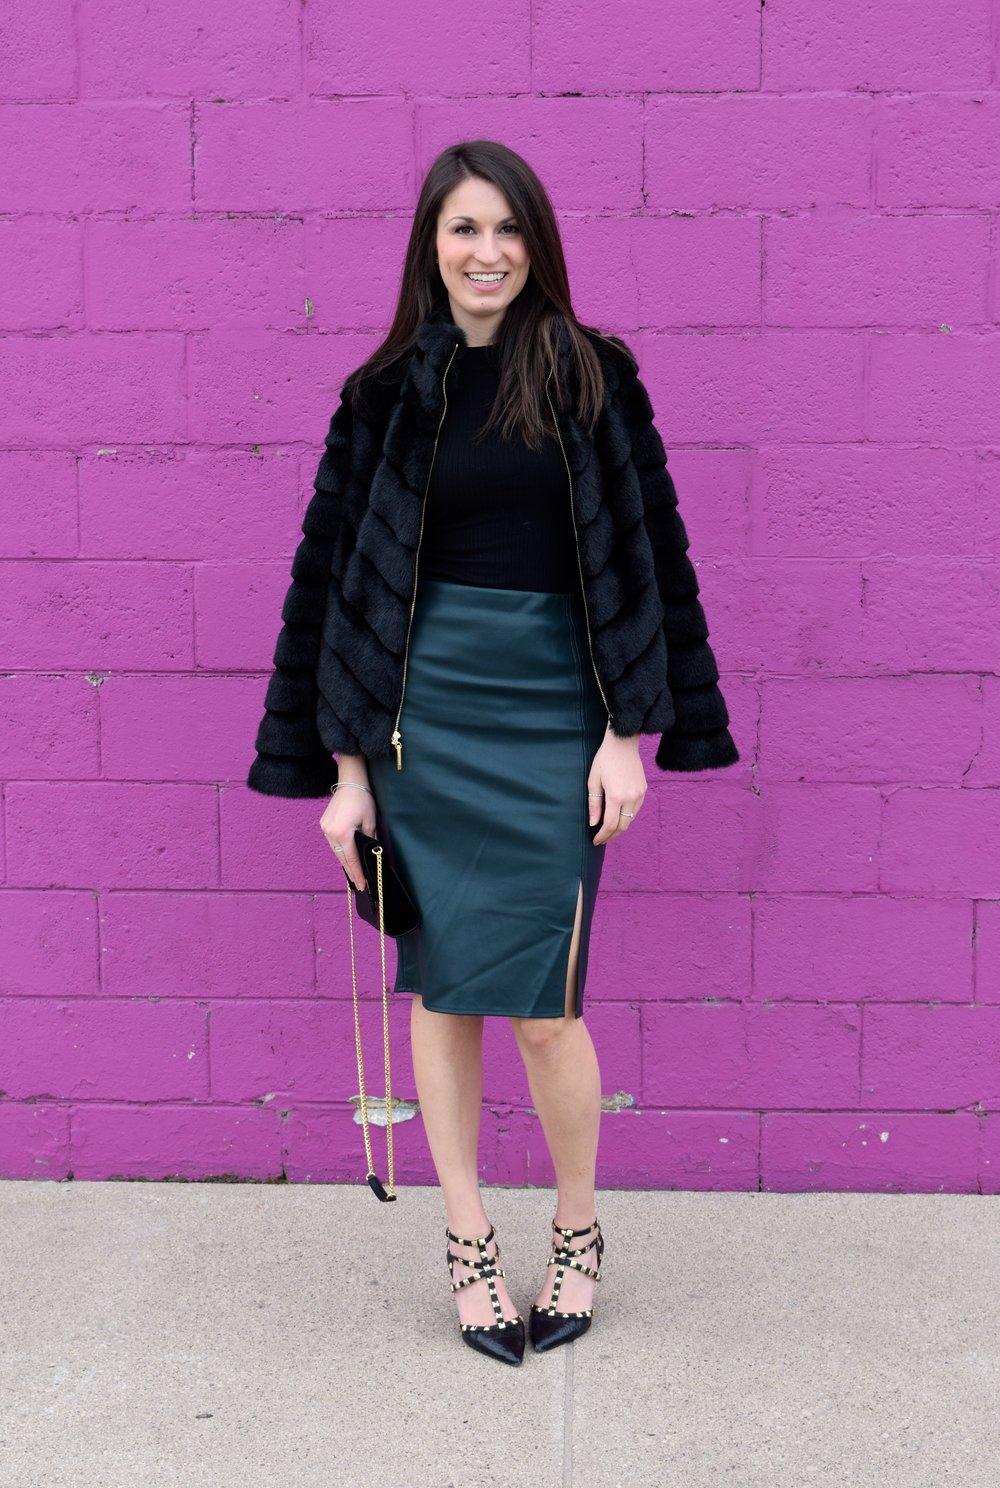 Fur jacket//Leather Skirt